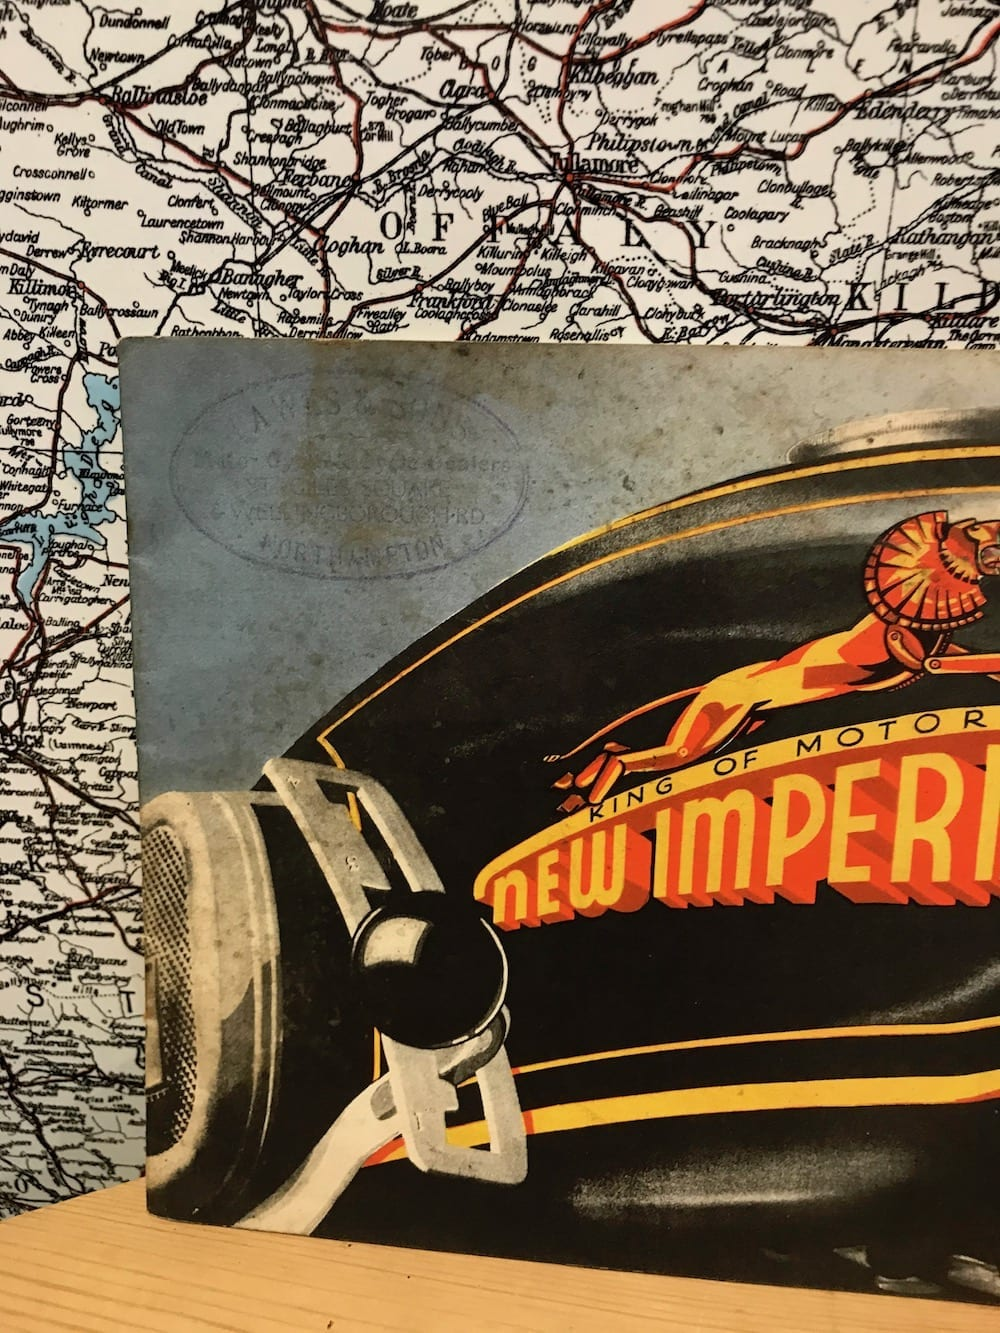 1936 NEW IMPERIAL MOTOR CYCLES CATALOGUE. - Vintage Motoring UK